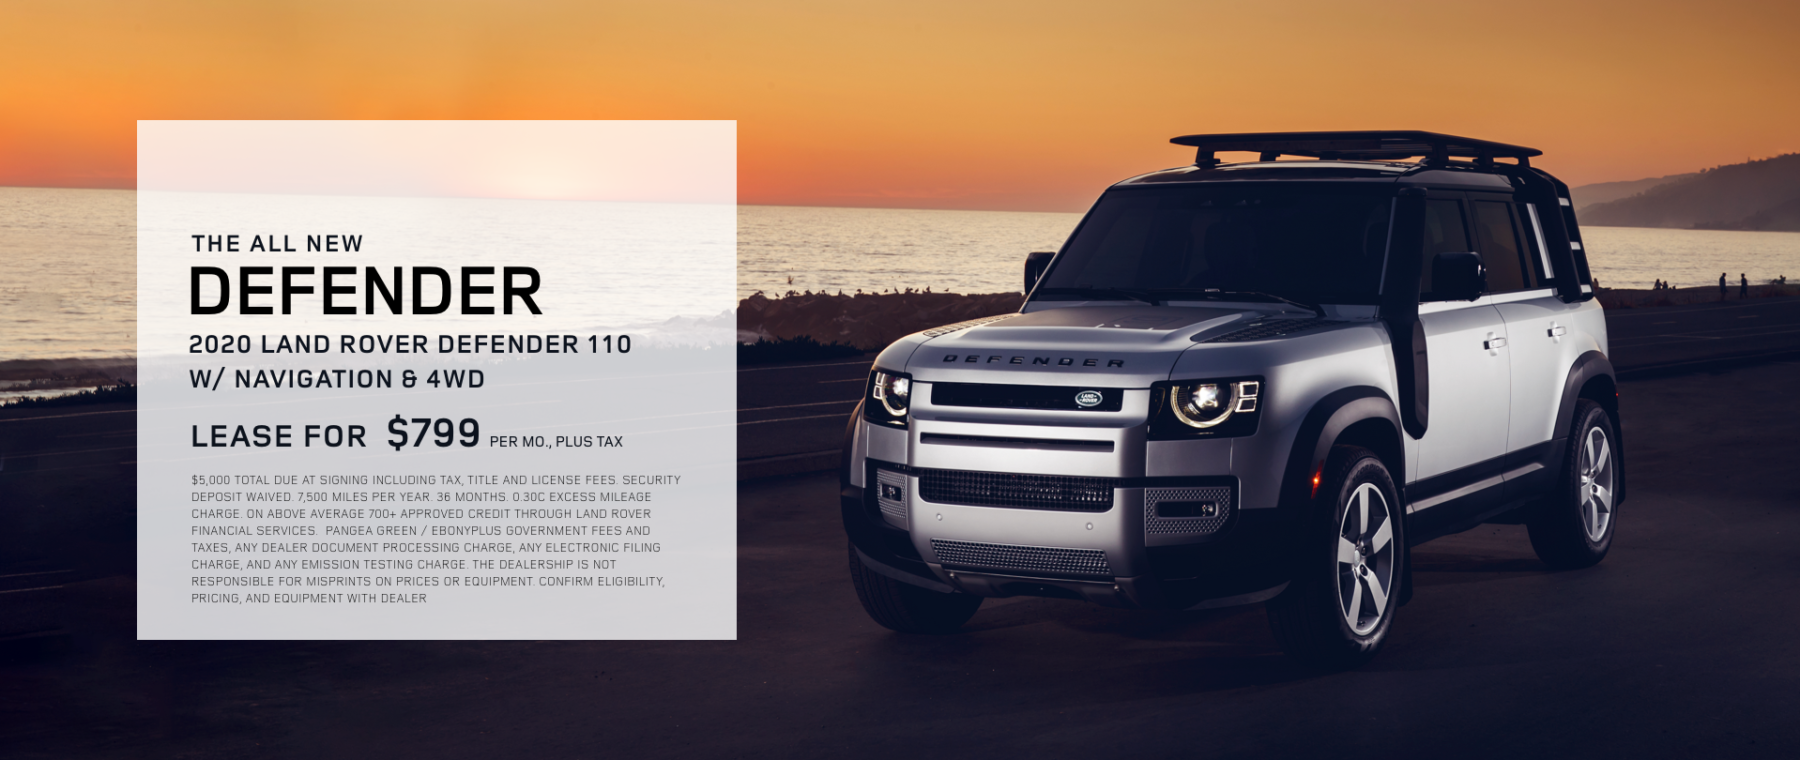 LRNB-All-New-Defender-2